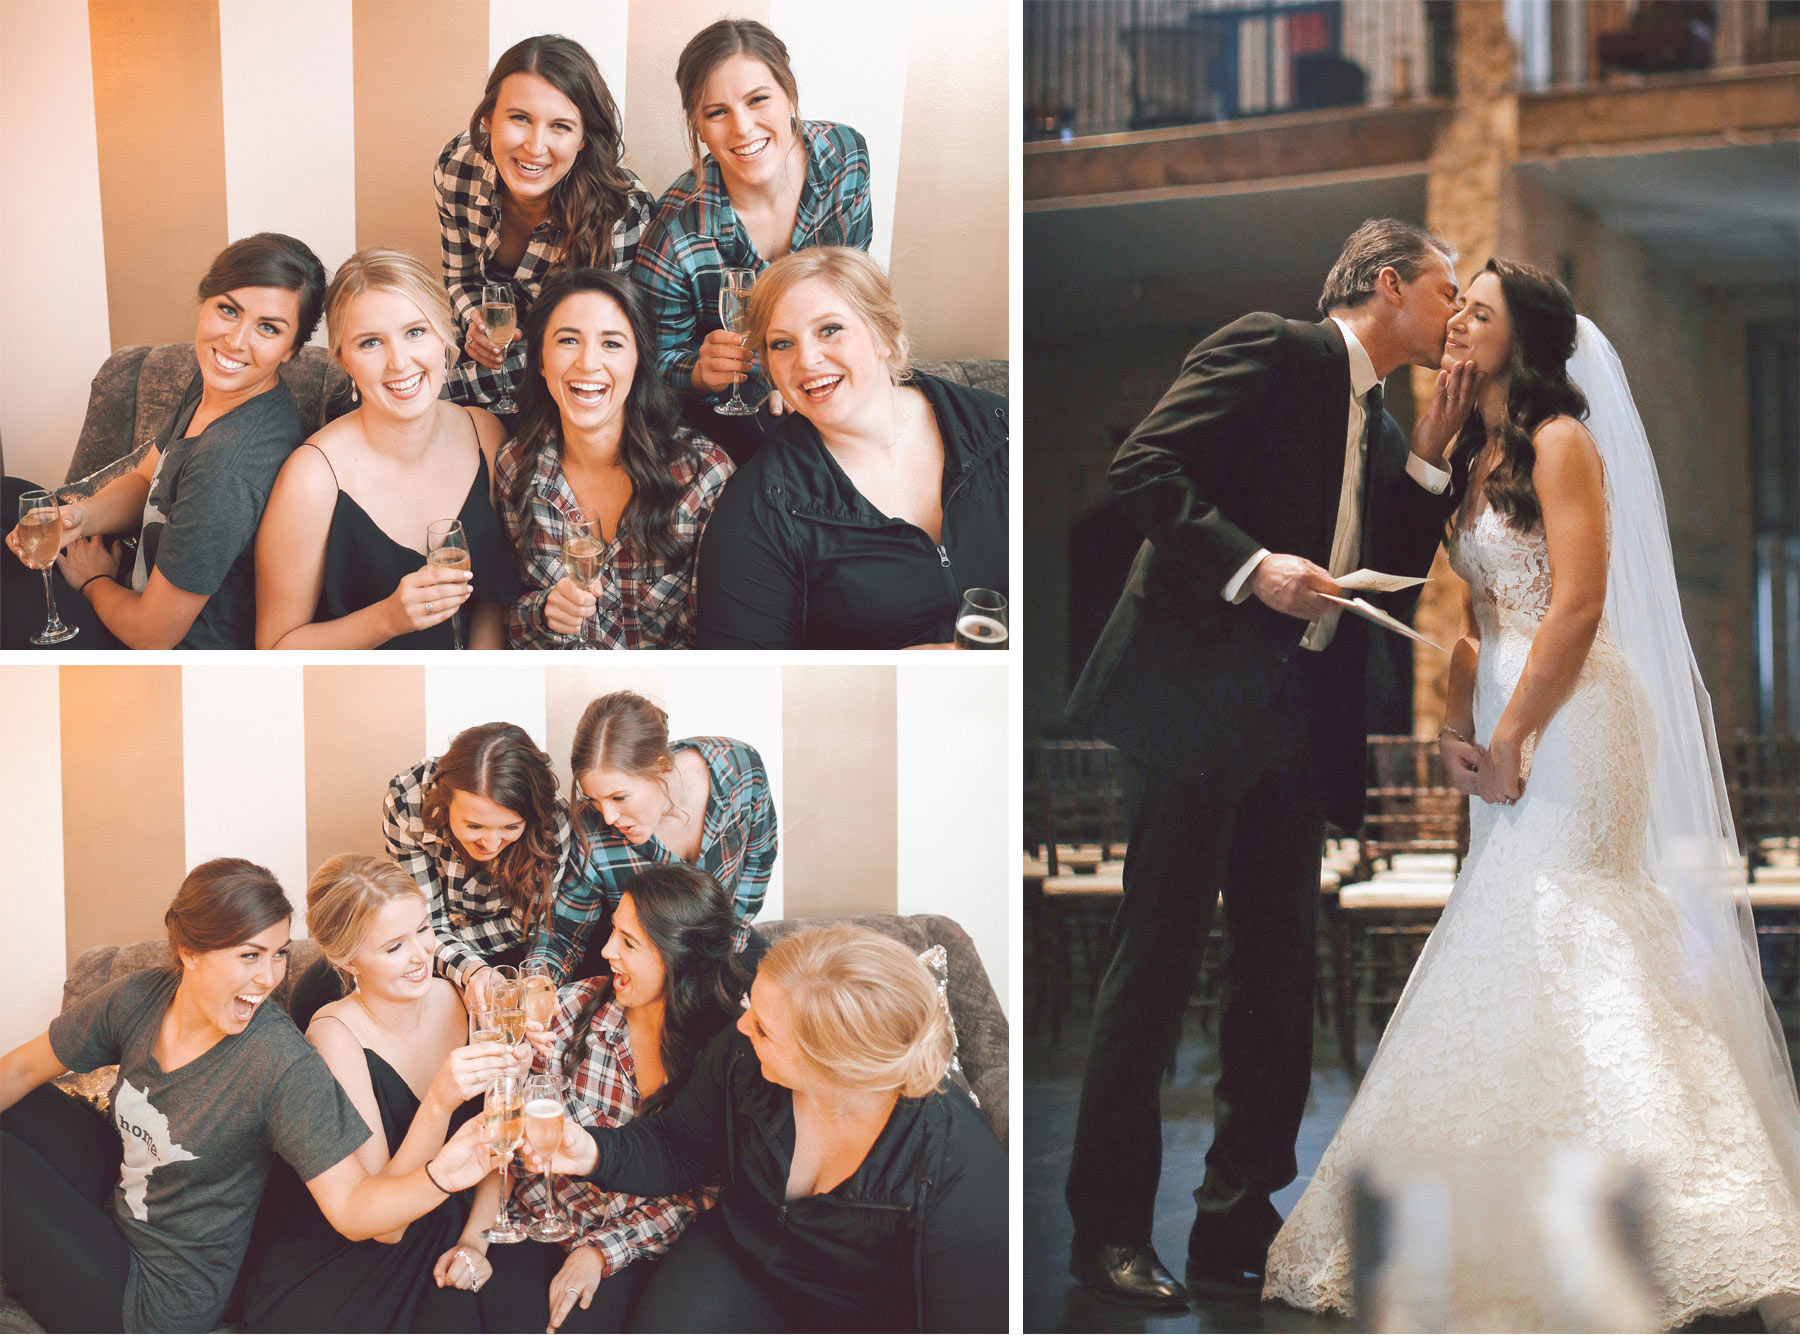 01-Minneapolis-Minnesota-Wedding-Photographer-by-Andrew-Vick-Photography-Aria-Spring-Getting-Ready-Bride-Bridesmaids-Champagne-Father-Daughter-Reveal-Note-Letter-Kiss-Vintage-Alex-and-Andy.jpg